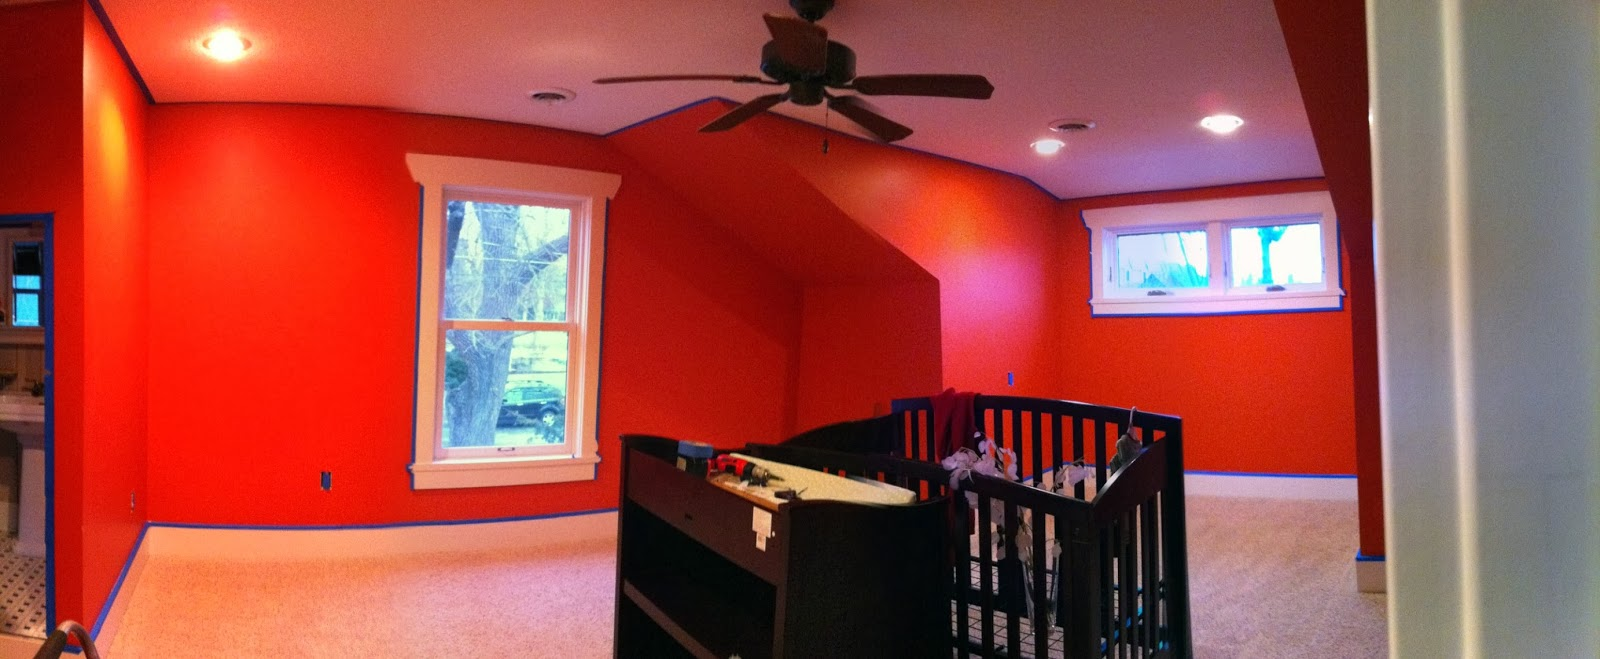 Jenmren Com Design Carter Amp Wesley S Big Ish Boy Room